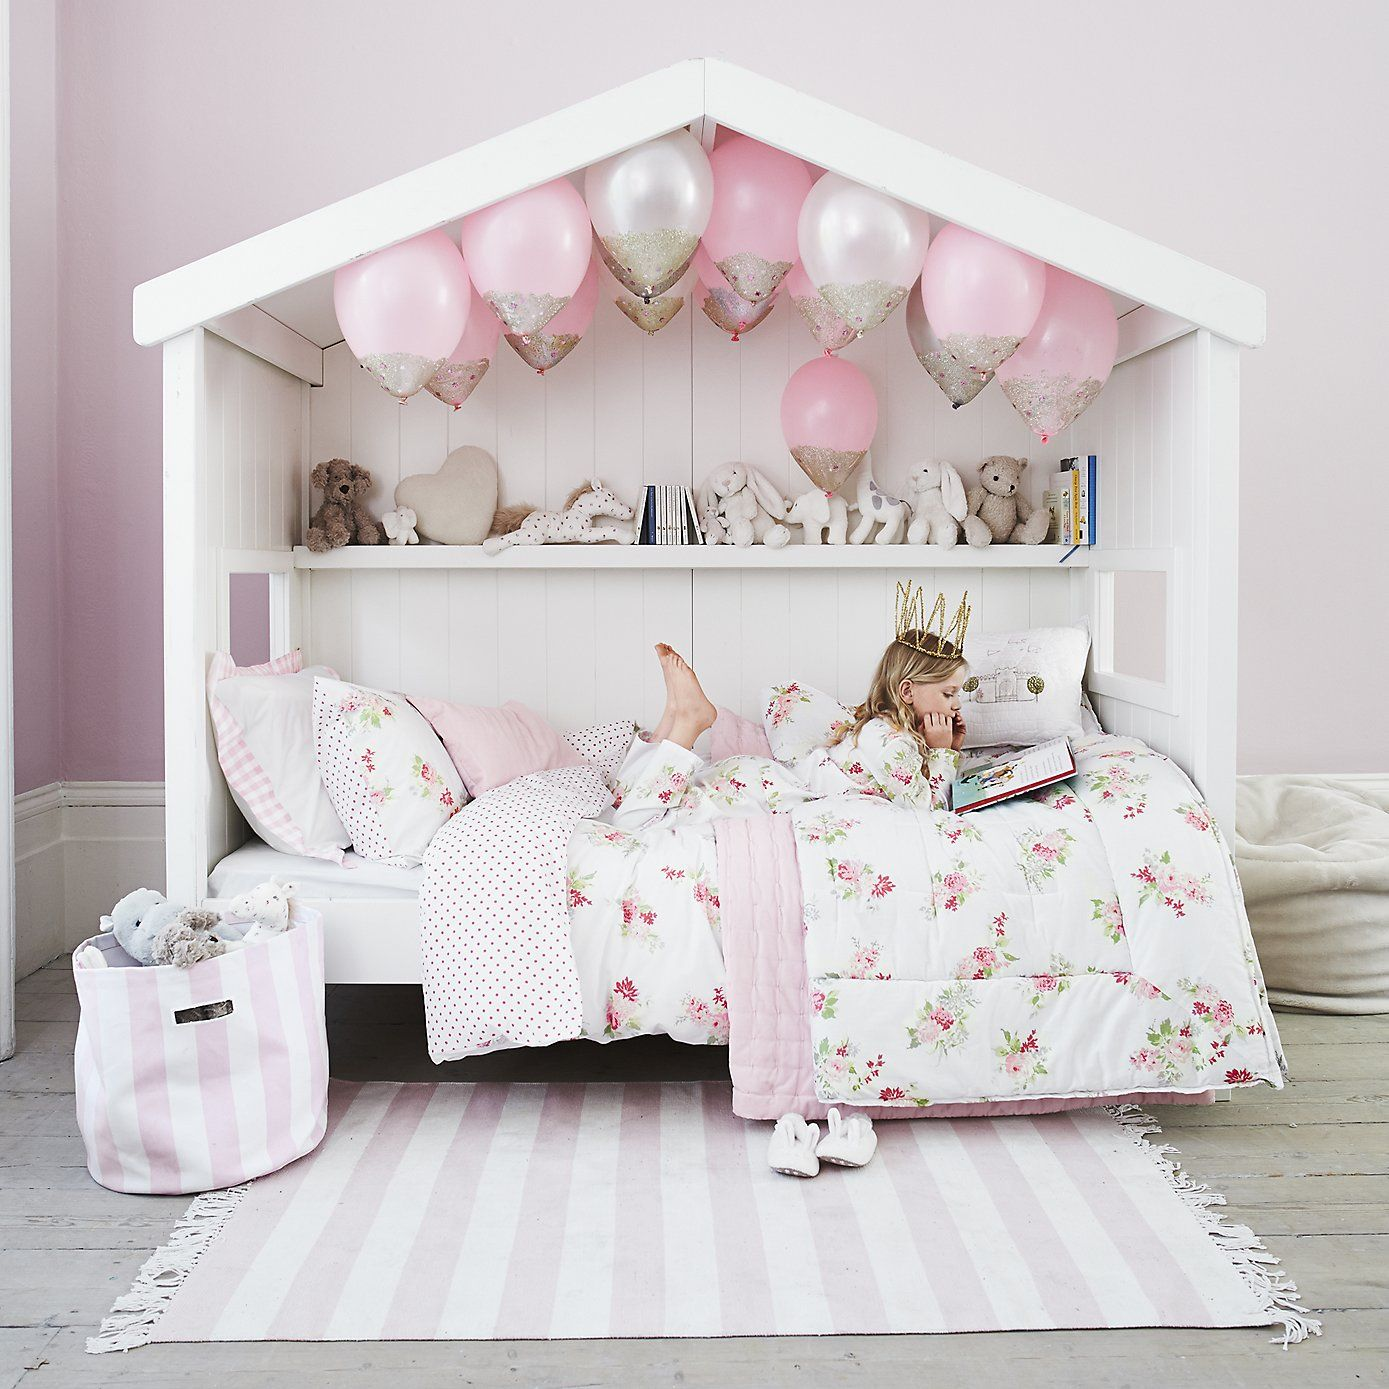 Kids Room Furniture: Classic House Day Bed